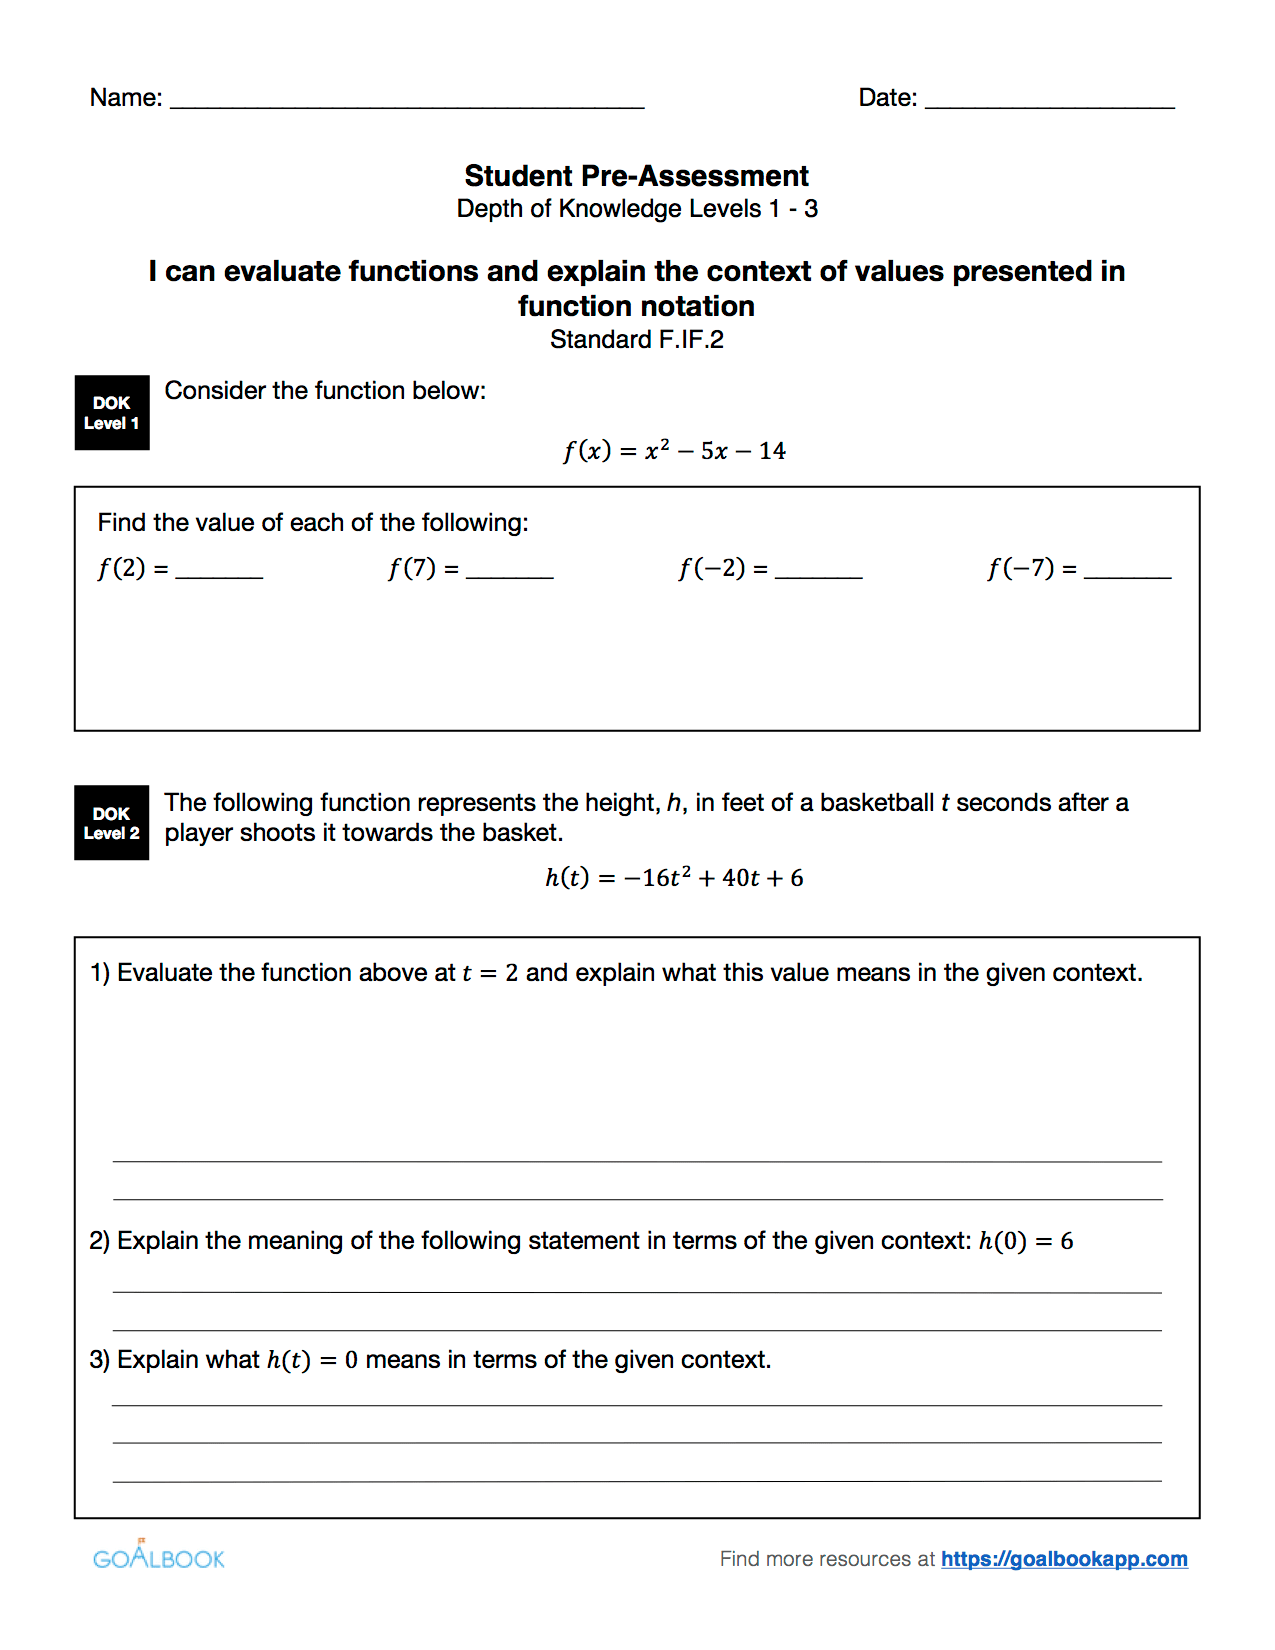 Hsf If 2 Evaluate Function Notation